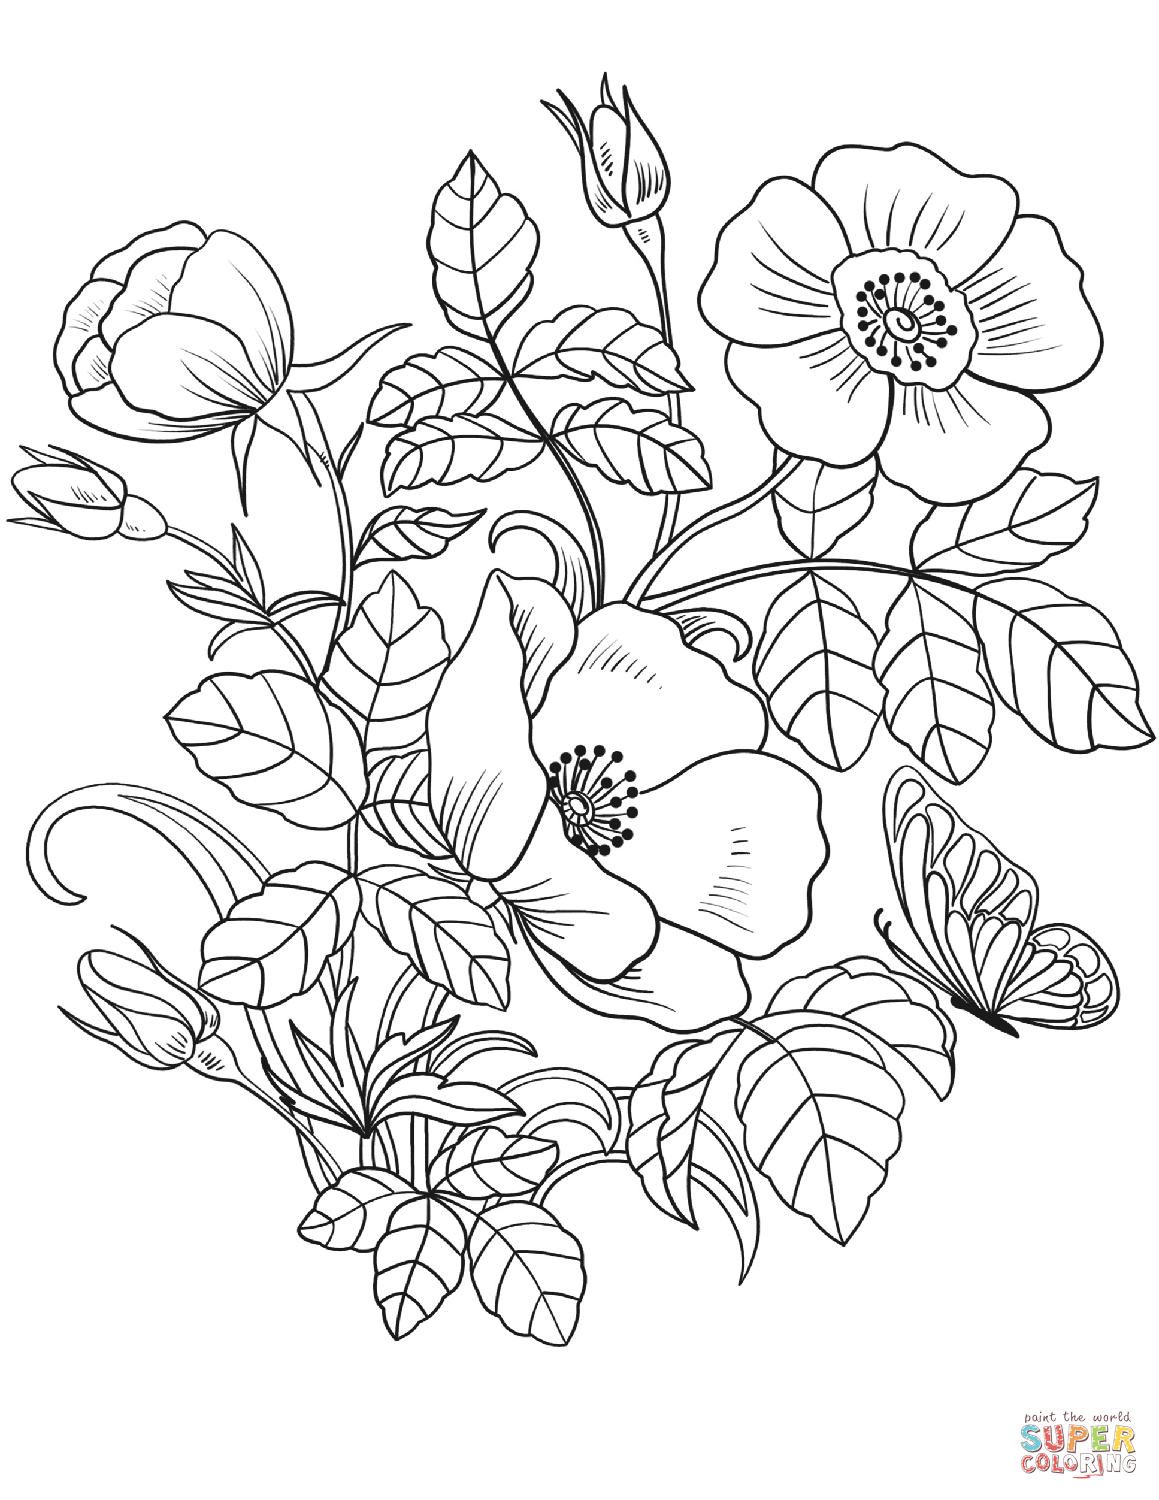 colouring pictures of flowers spring flowers coloring page free printable coloring pages pictures colouring flowers of